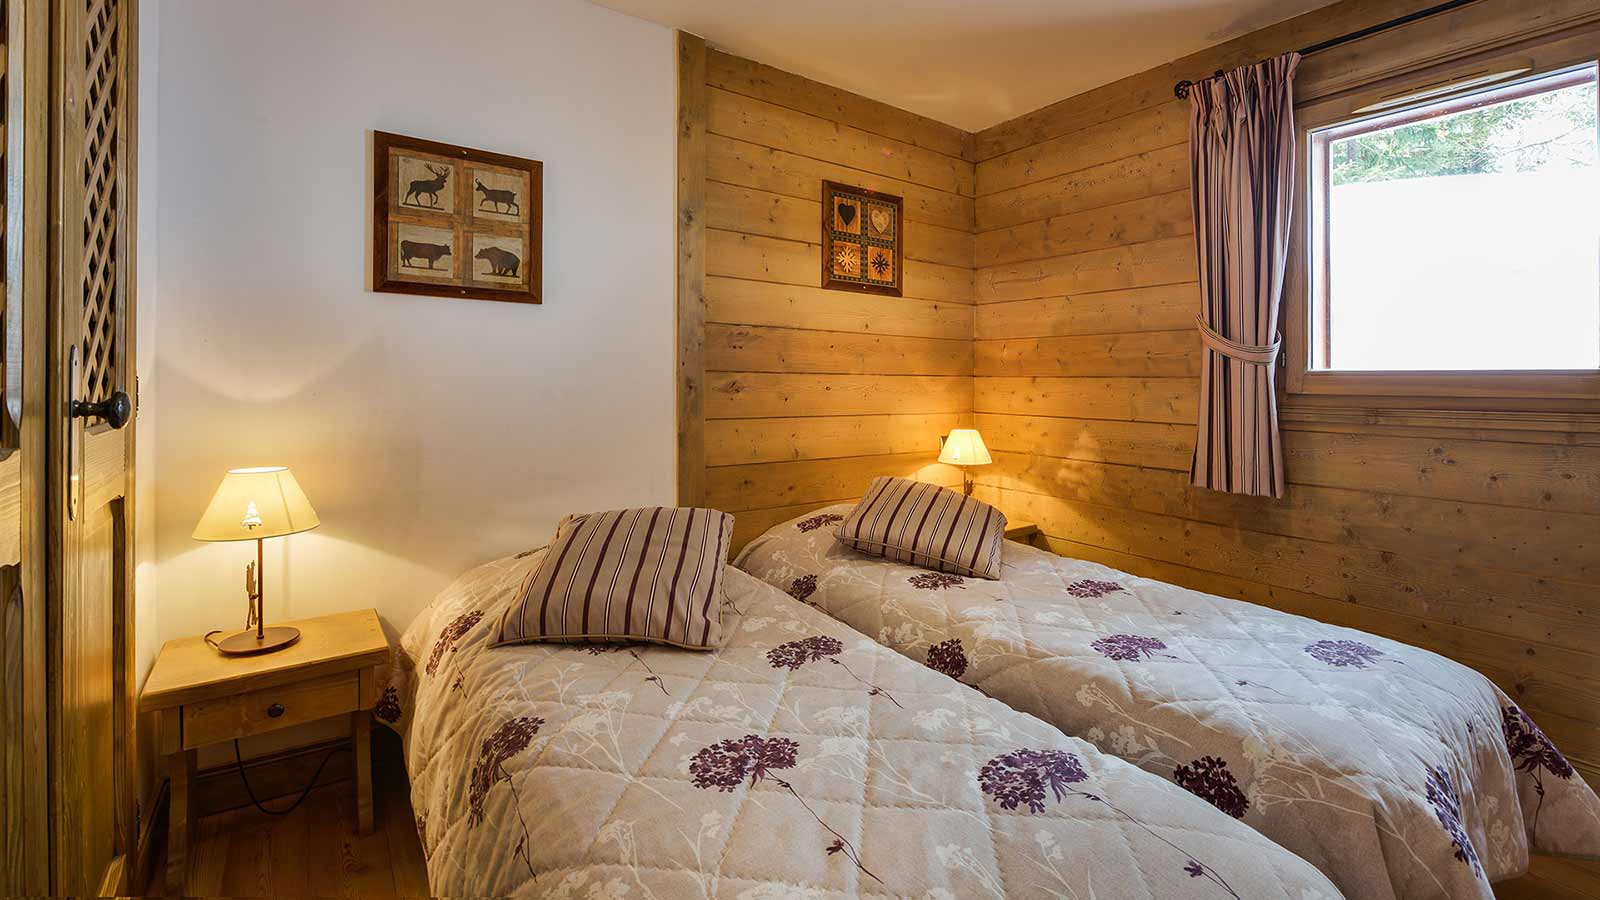 Bedrooms - Les Cimes Blanches, La Rosiere, France